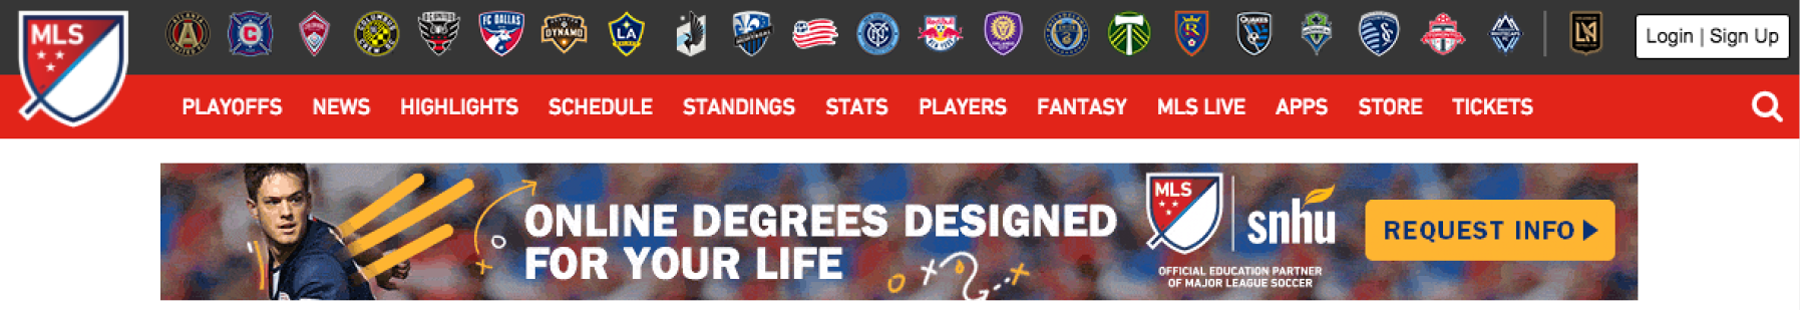 MLS Home Ad